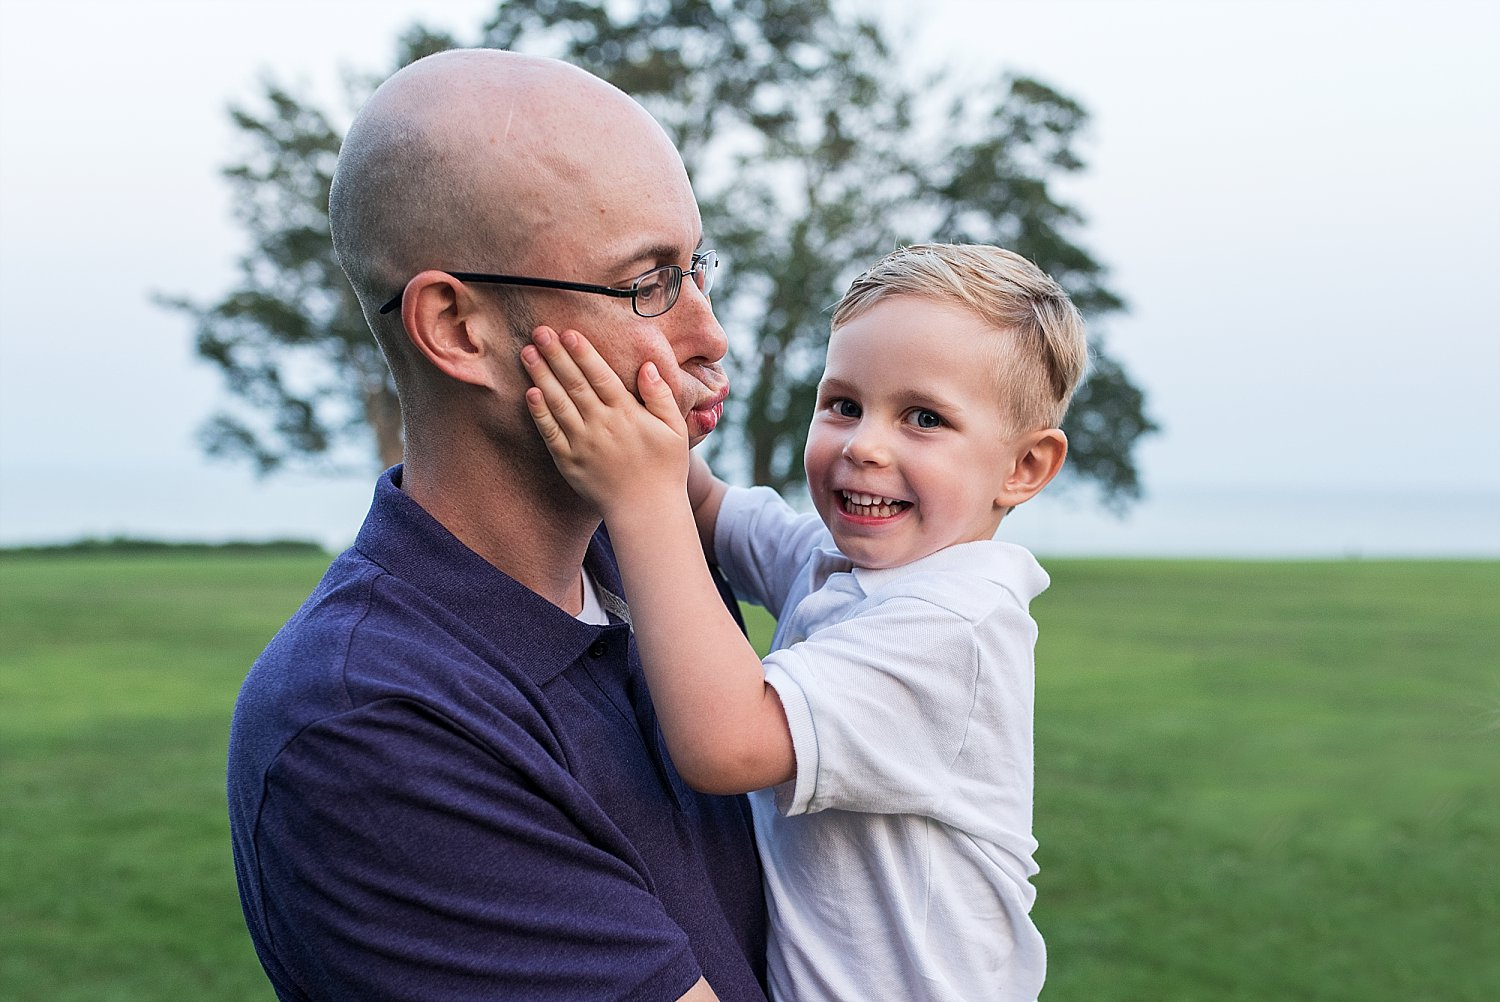 Dad and son being silly during Family photography in Connecticut